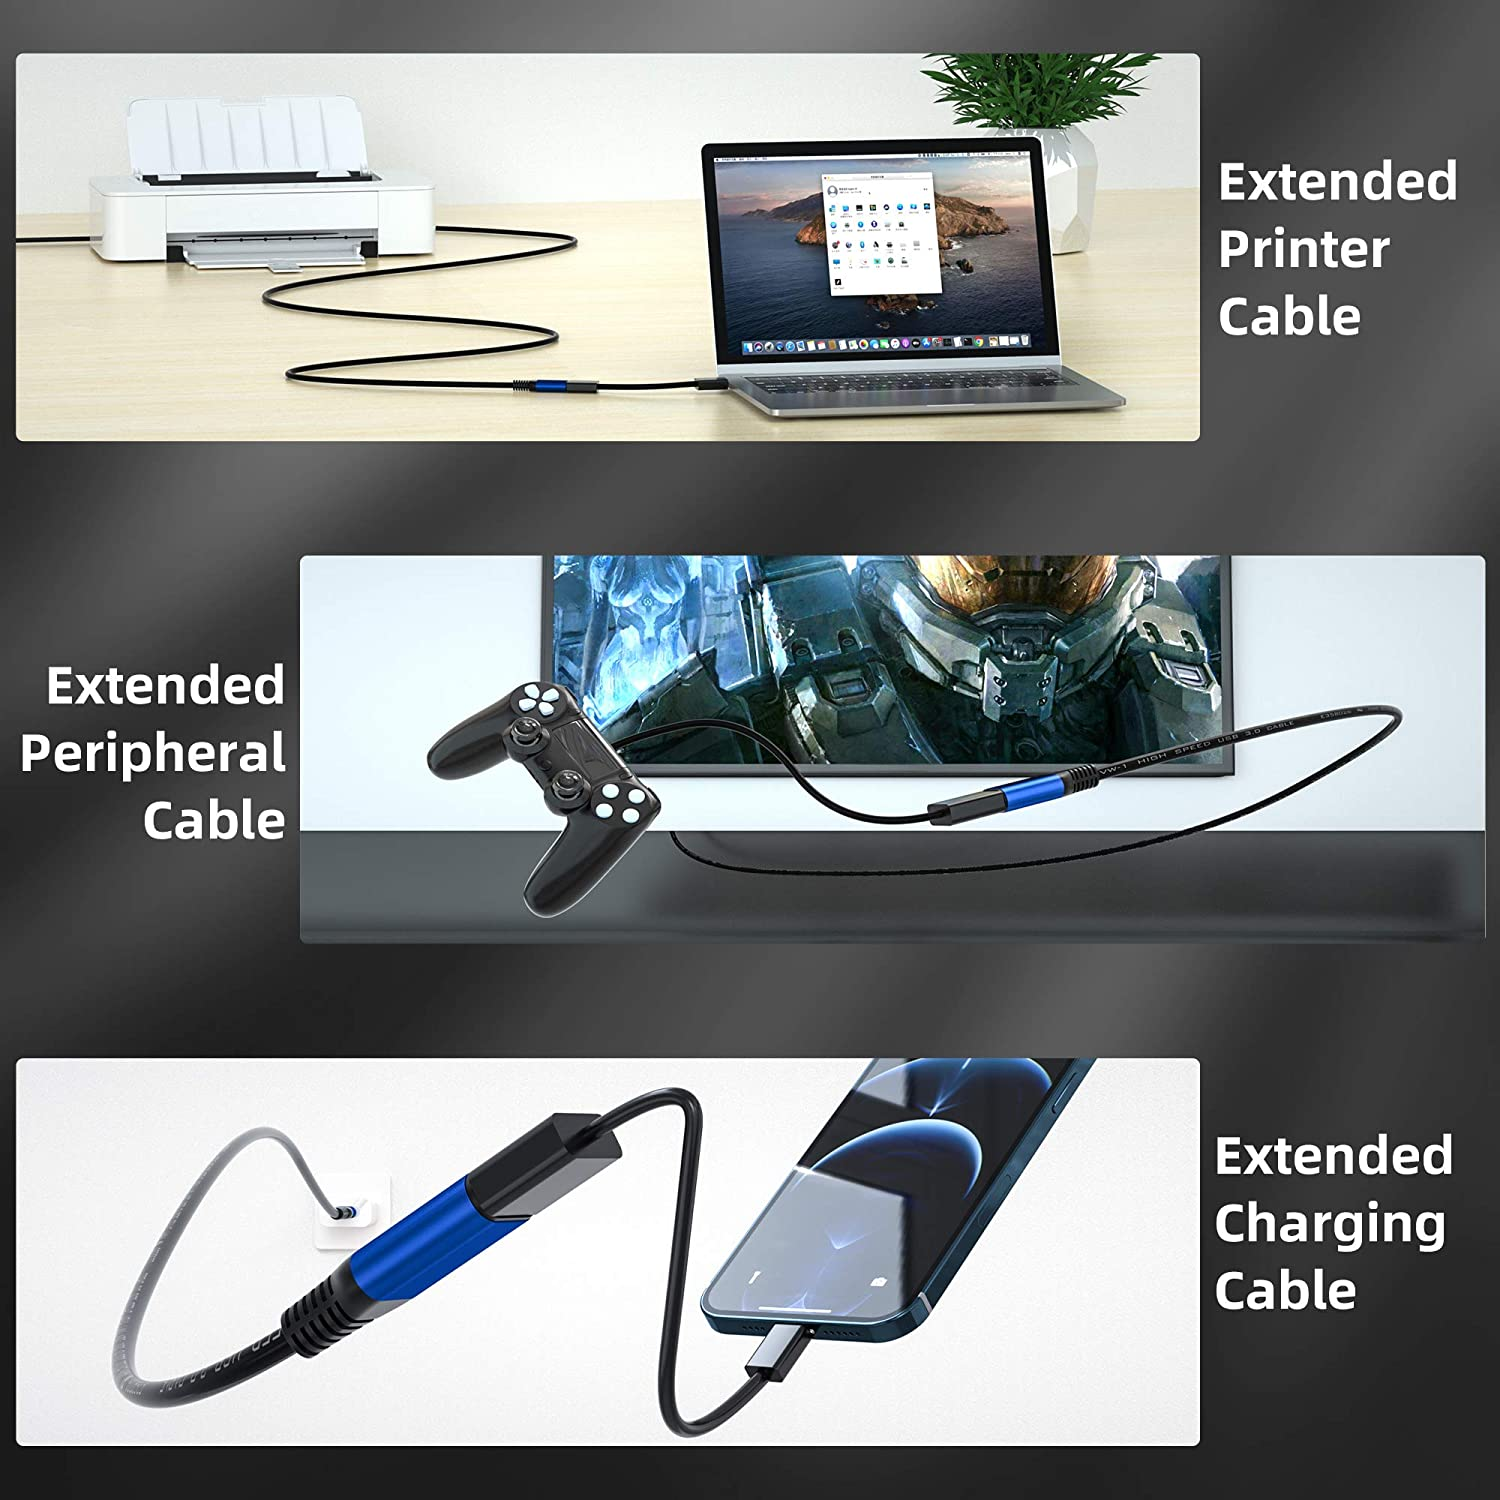 USB 3.0 Extension Cable 1ft, Weetcoocm Durable Braided USB 3.0 Extension Cable - A-Male to A-Female for USB Flash Drive, Card Reader, Hard Drive, Keyboard,Mouse,Playstation, Xbox, Printer, Camera